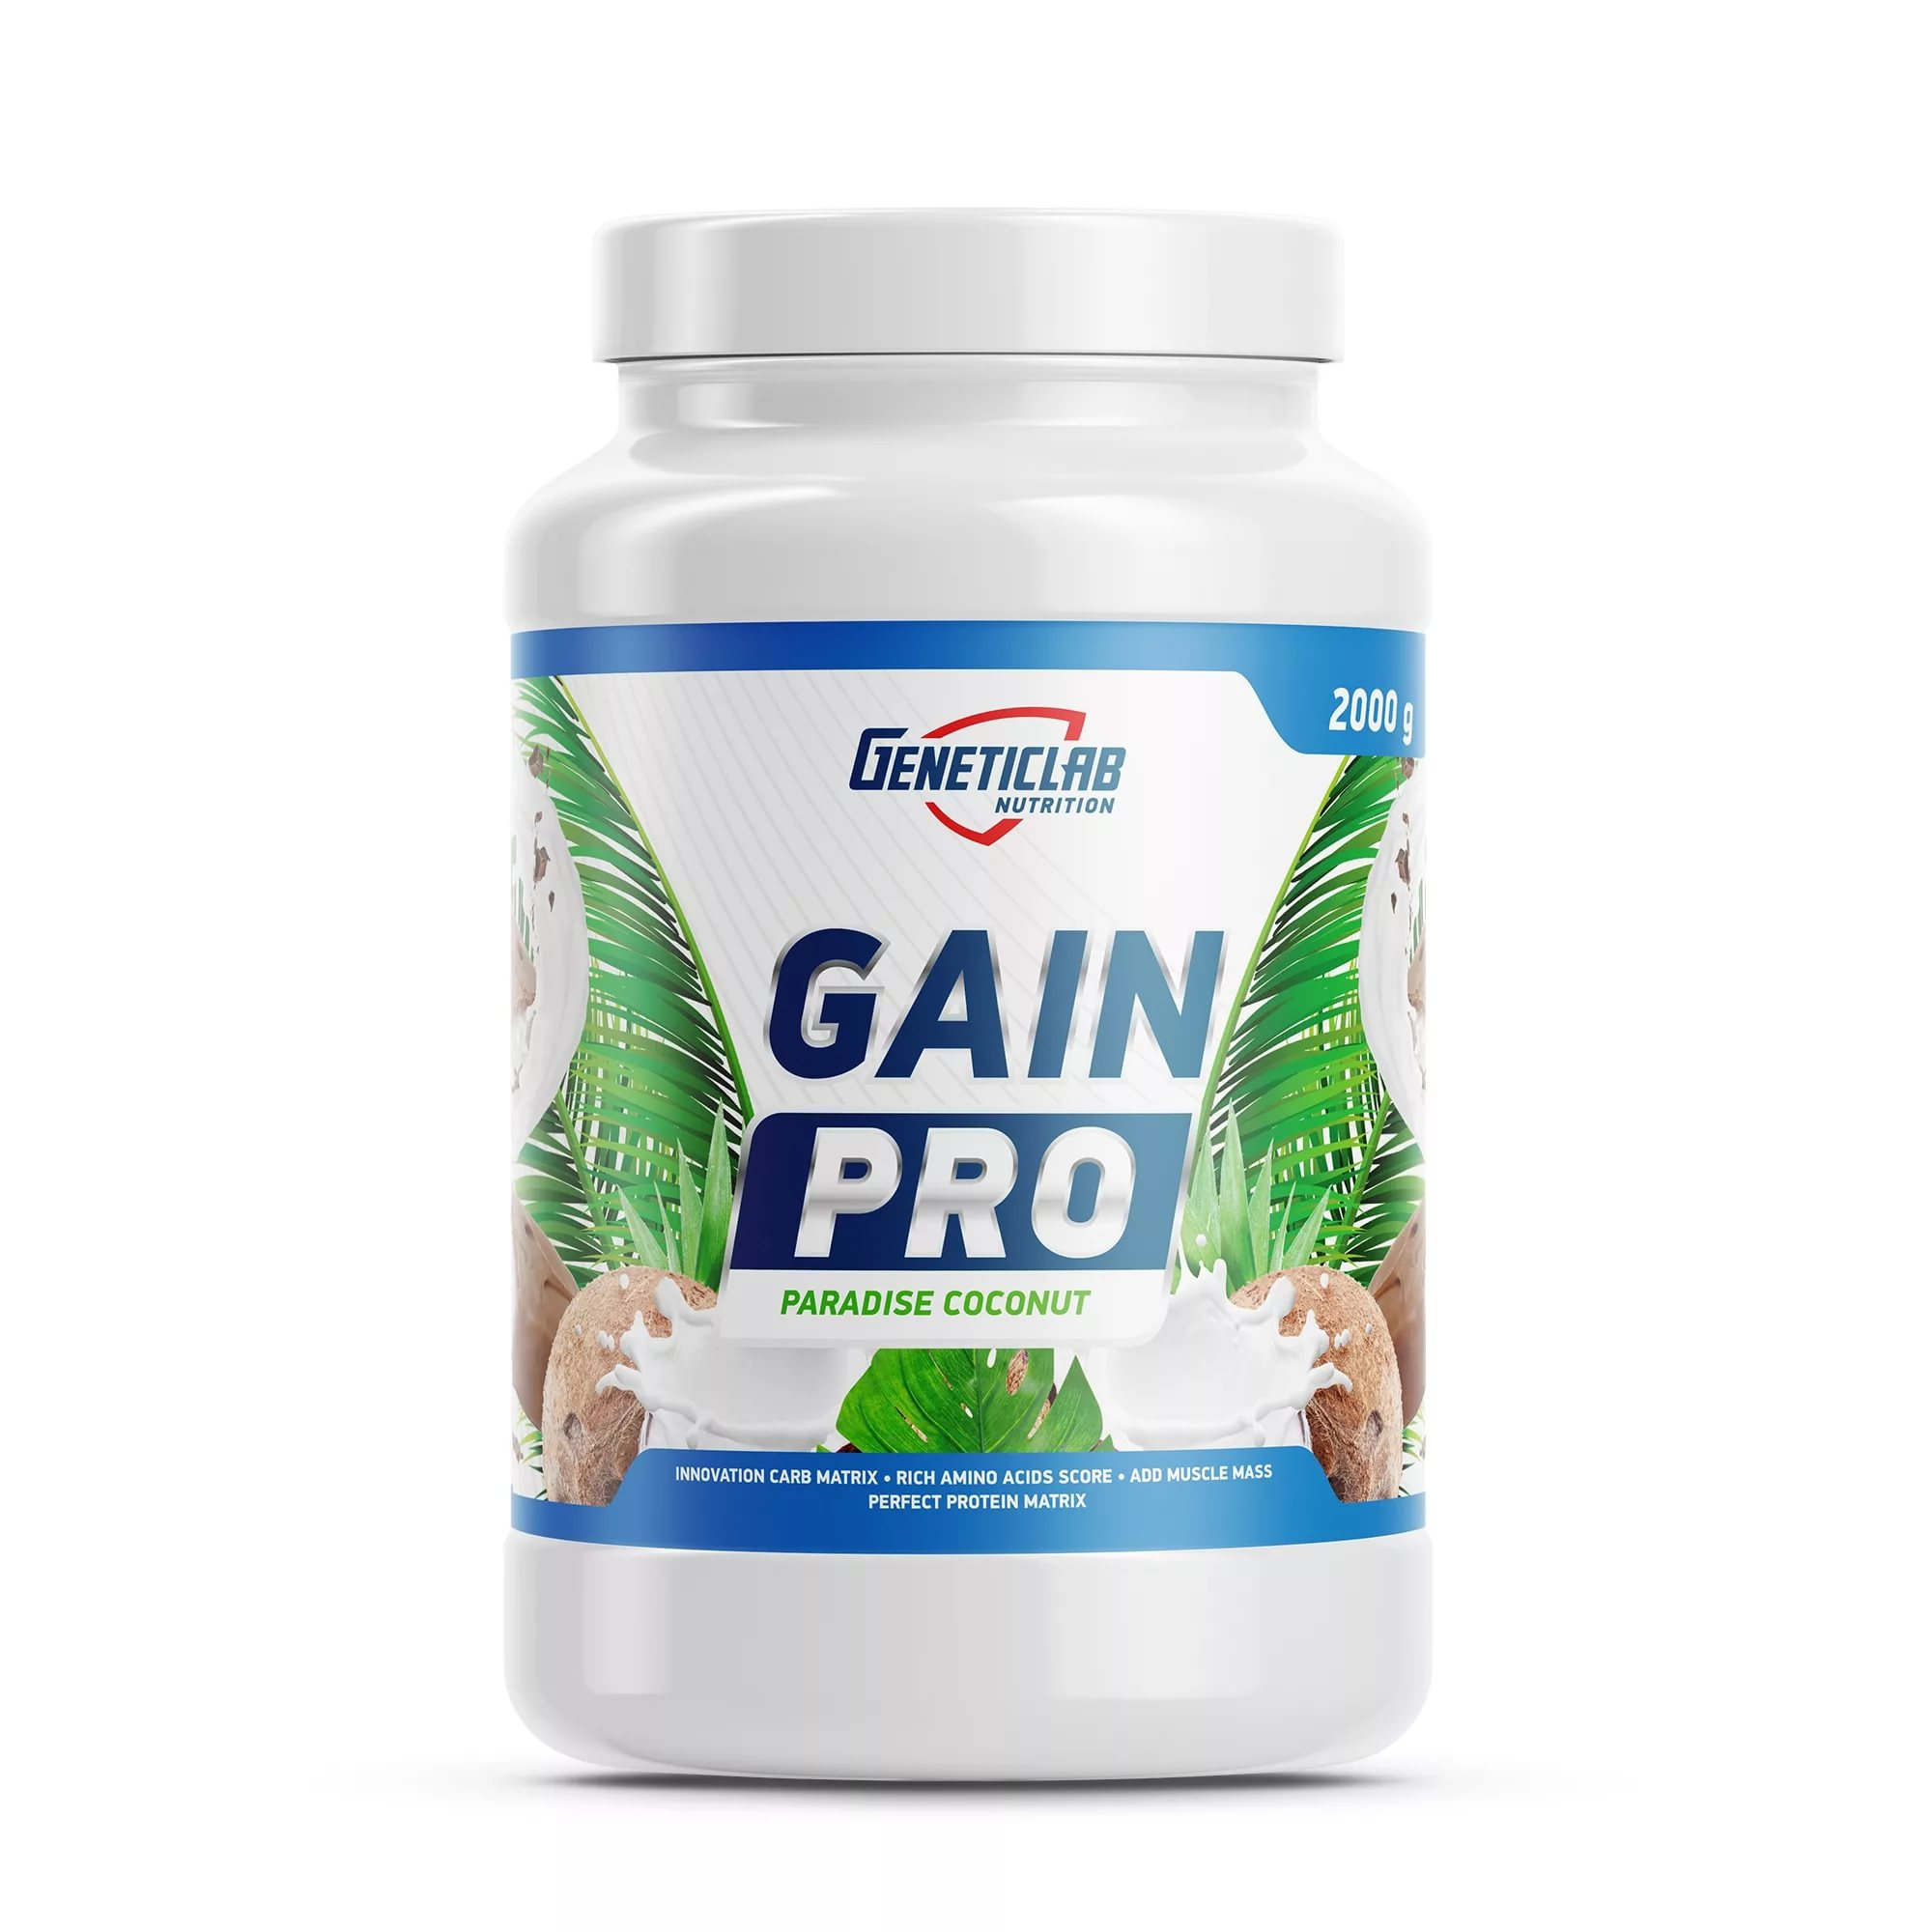 Gain Pro Genetic LAB